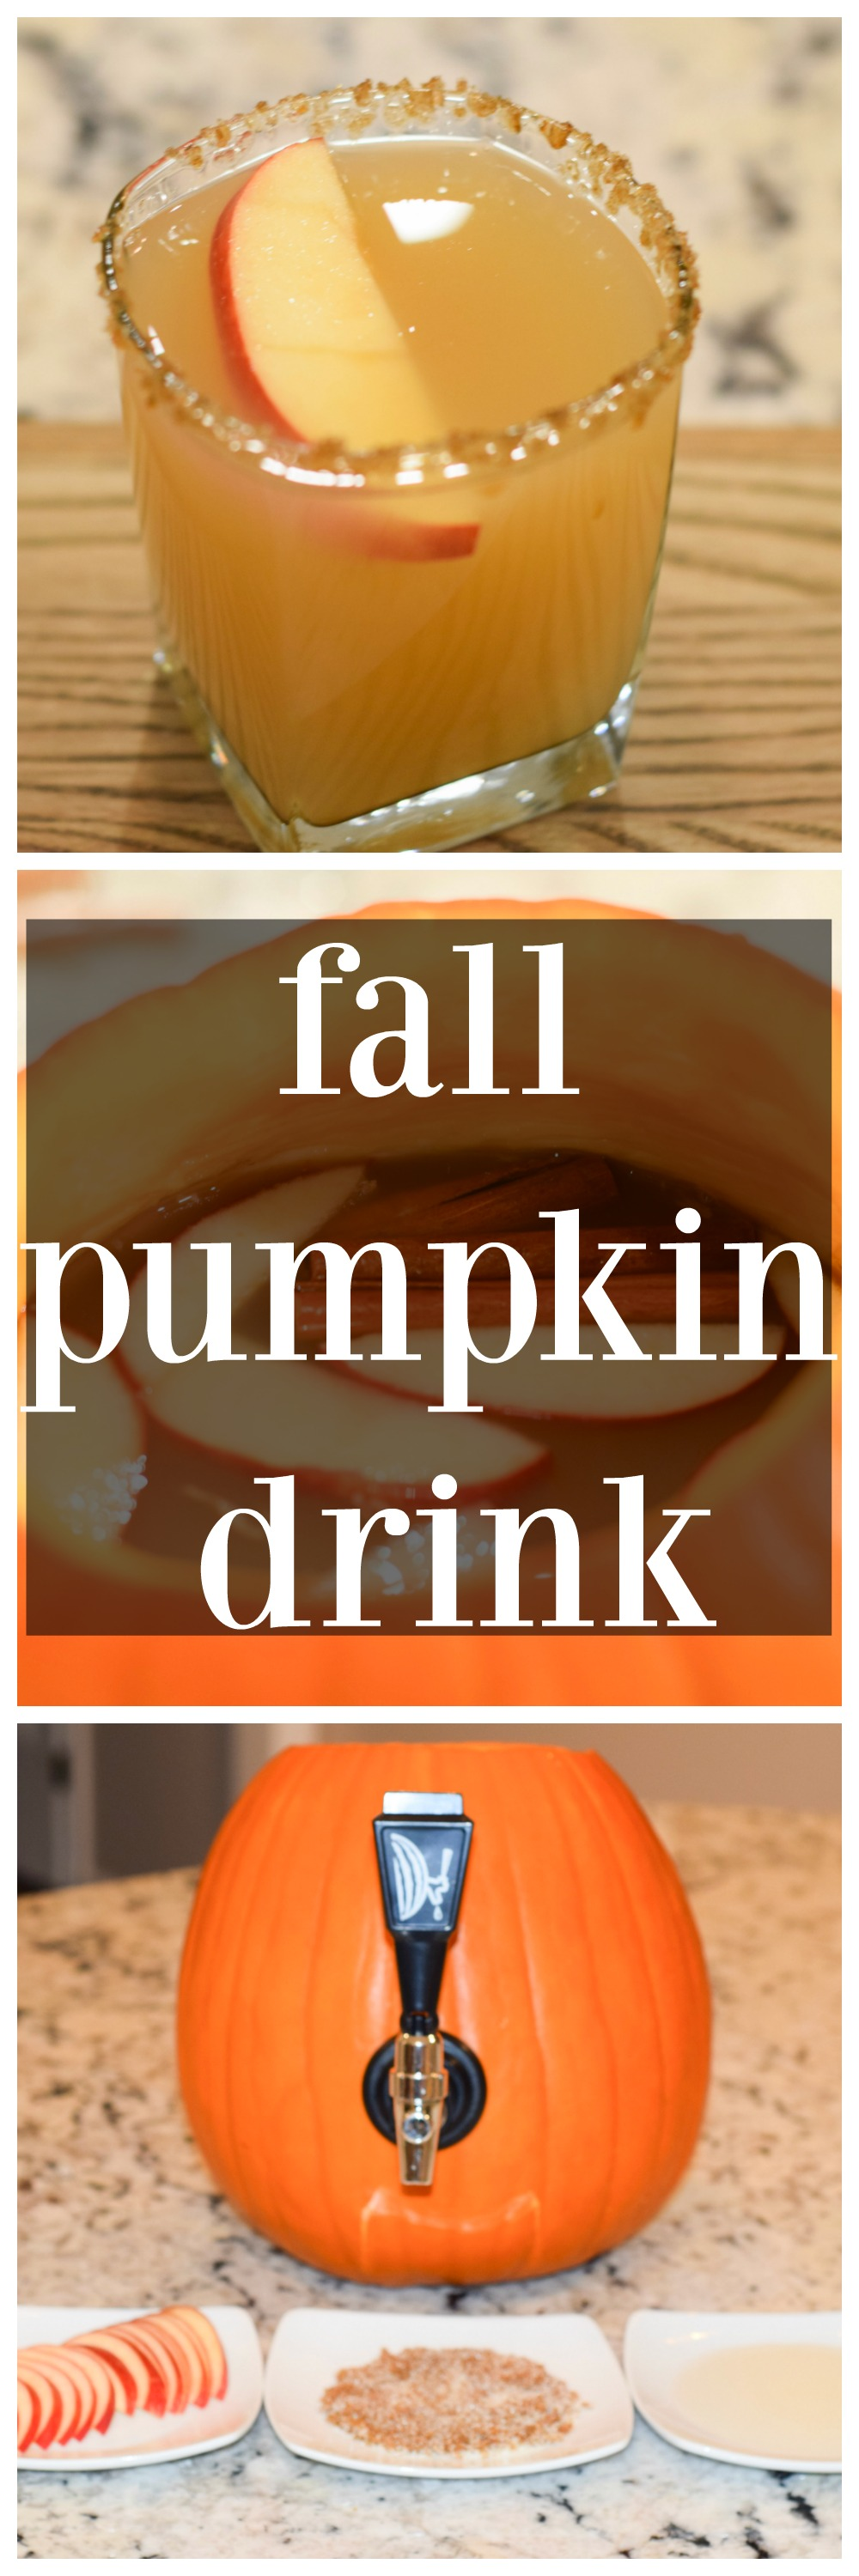 fall pumpkin drink